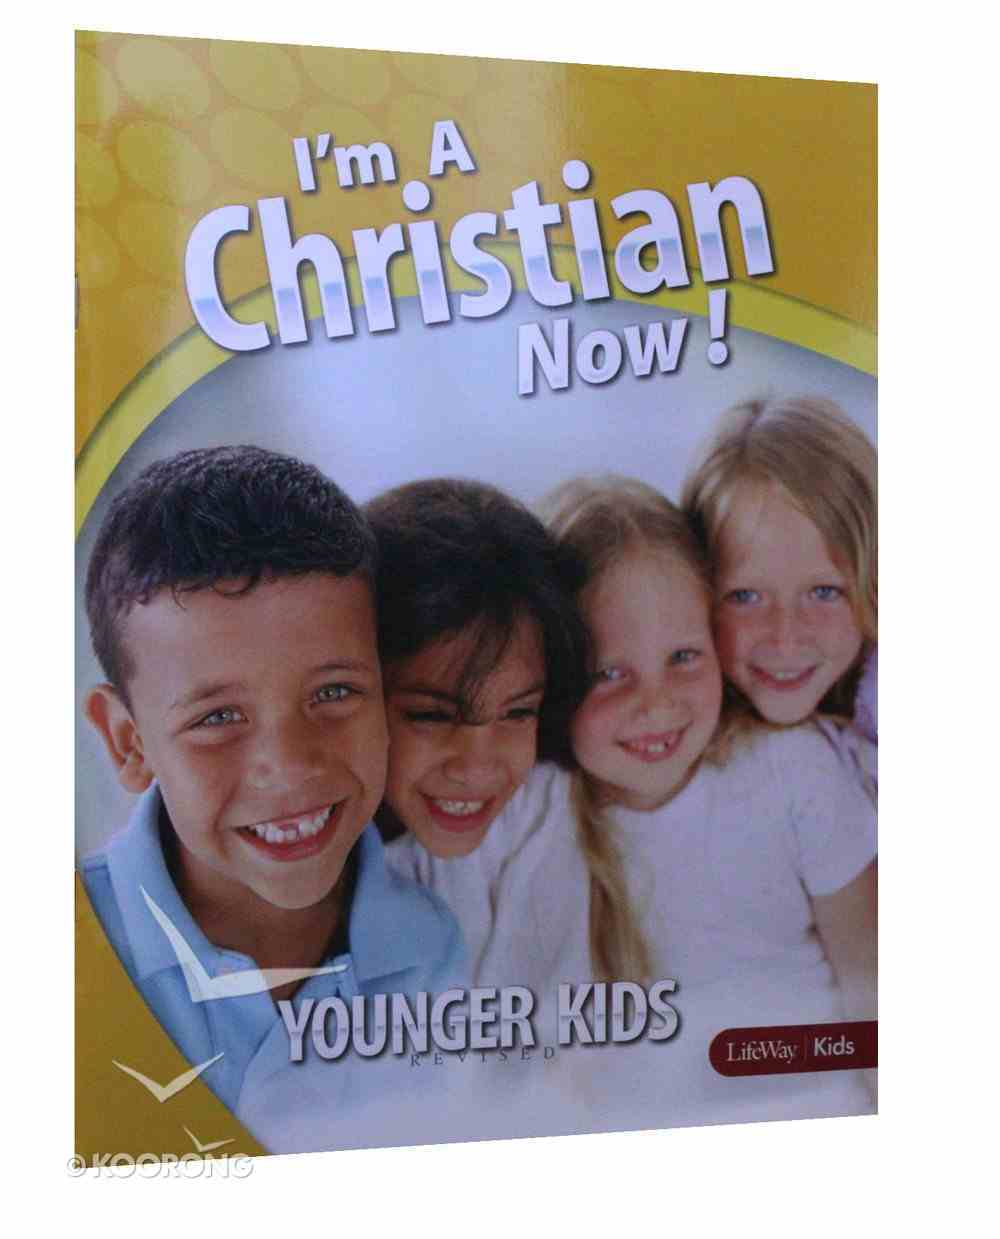 I'm a Christian Now (Grades 1-3) (Younger Kids) Paperback